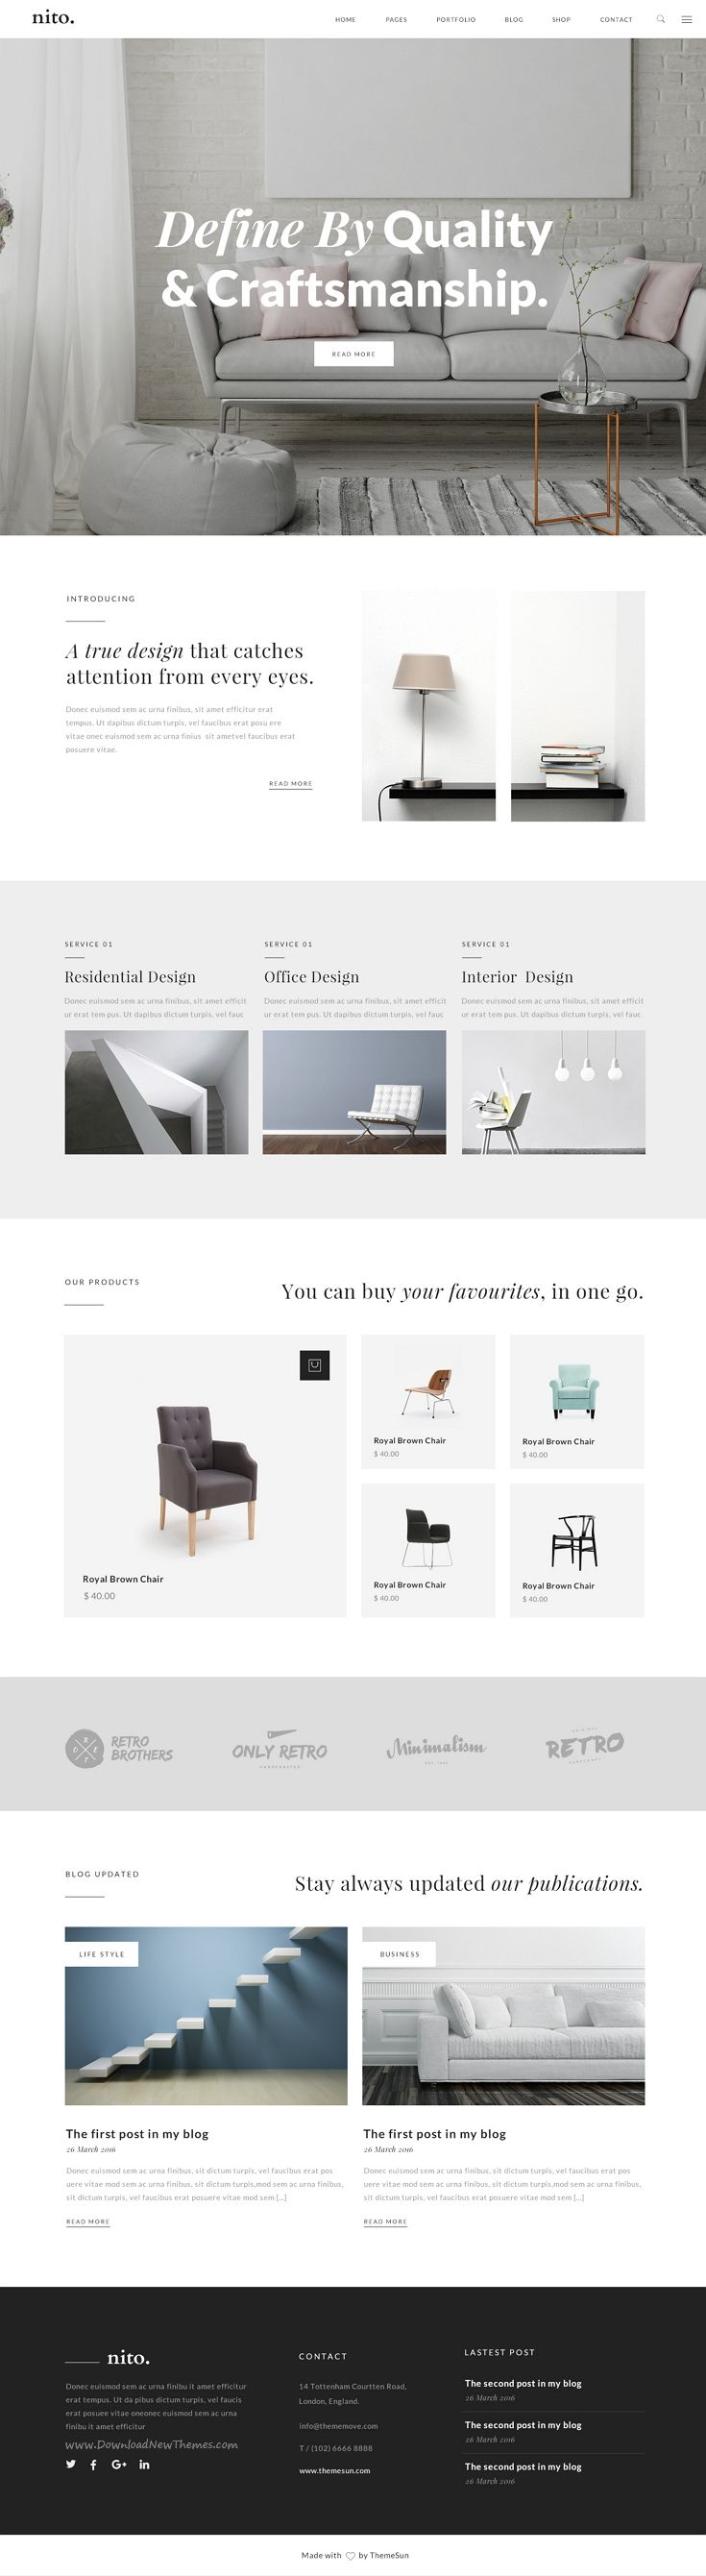 Best 25+ Minimalist web design ideas on Pinterest | Website design ...